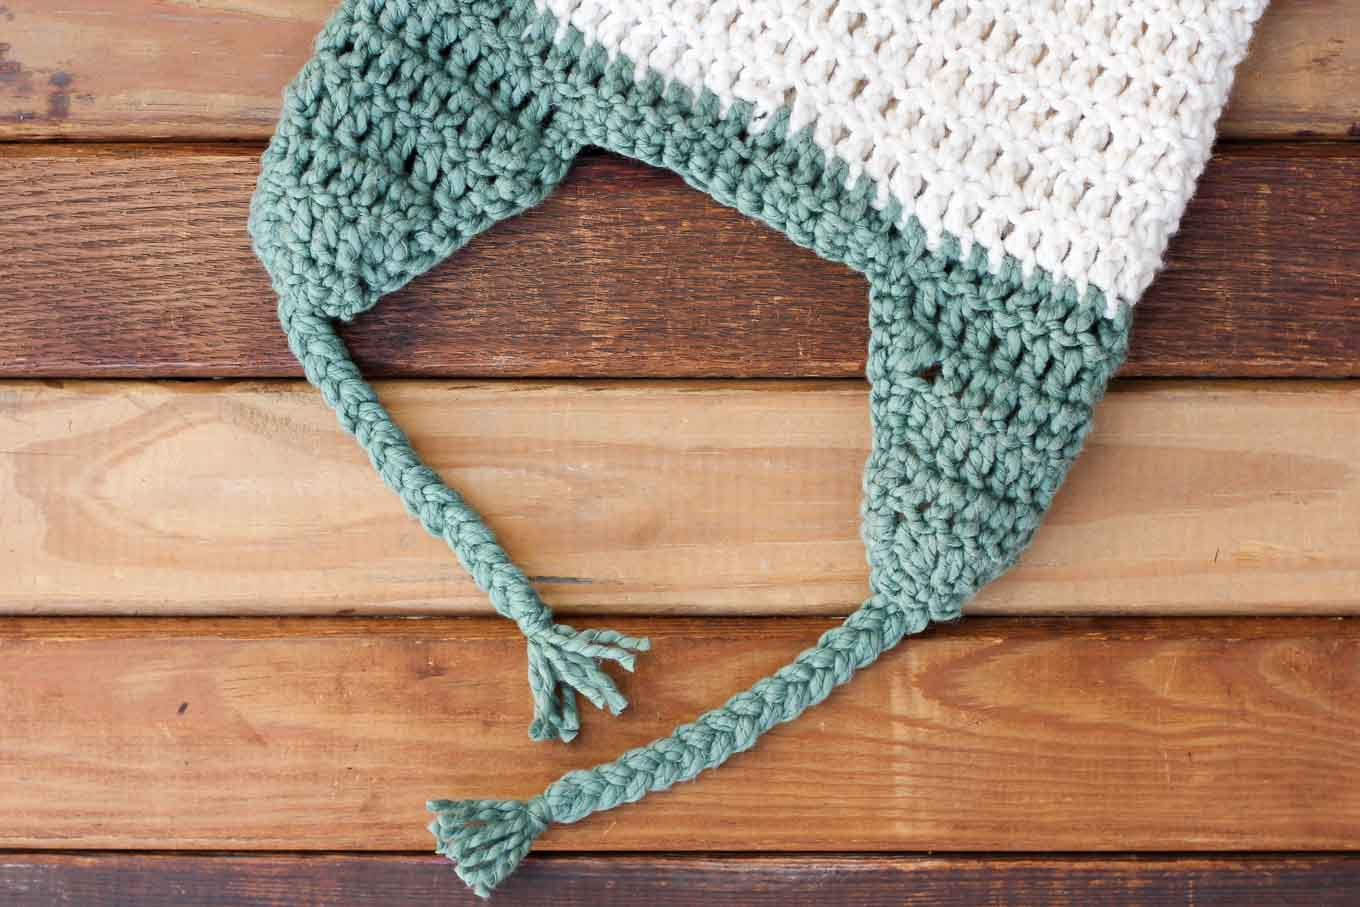 how to add to the chain crochet